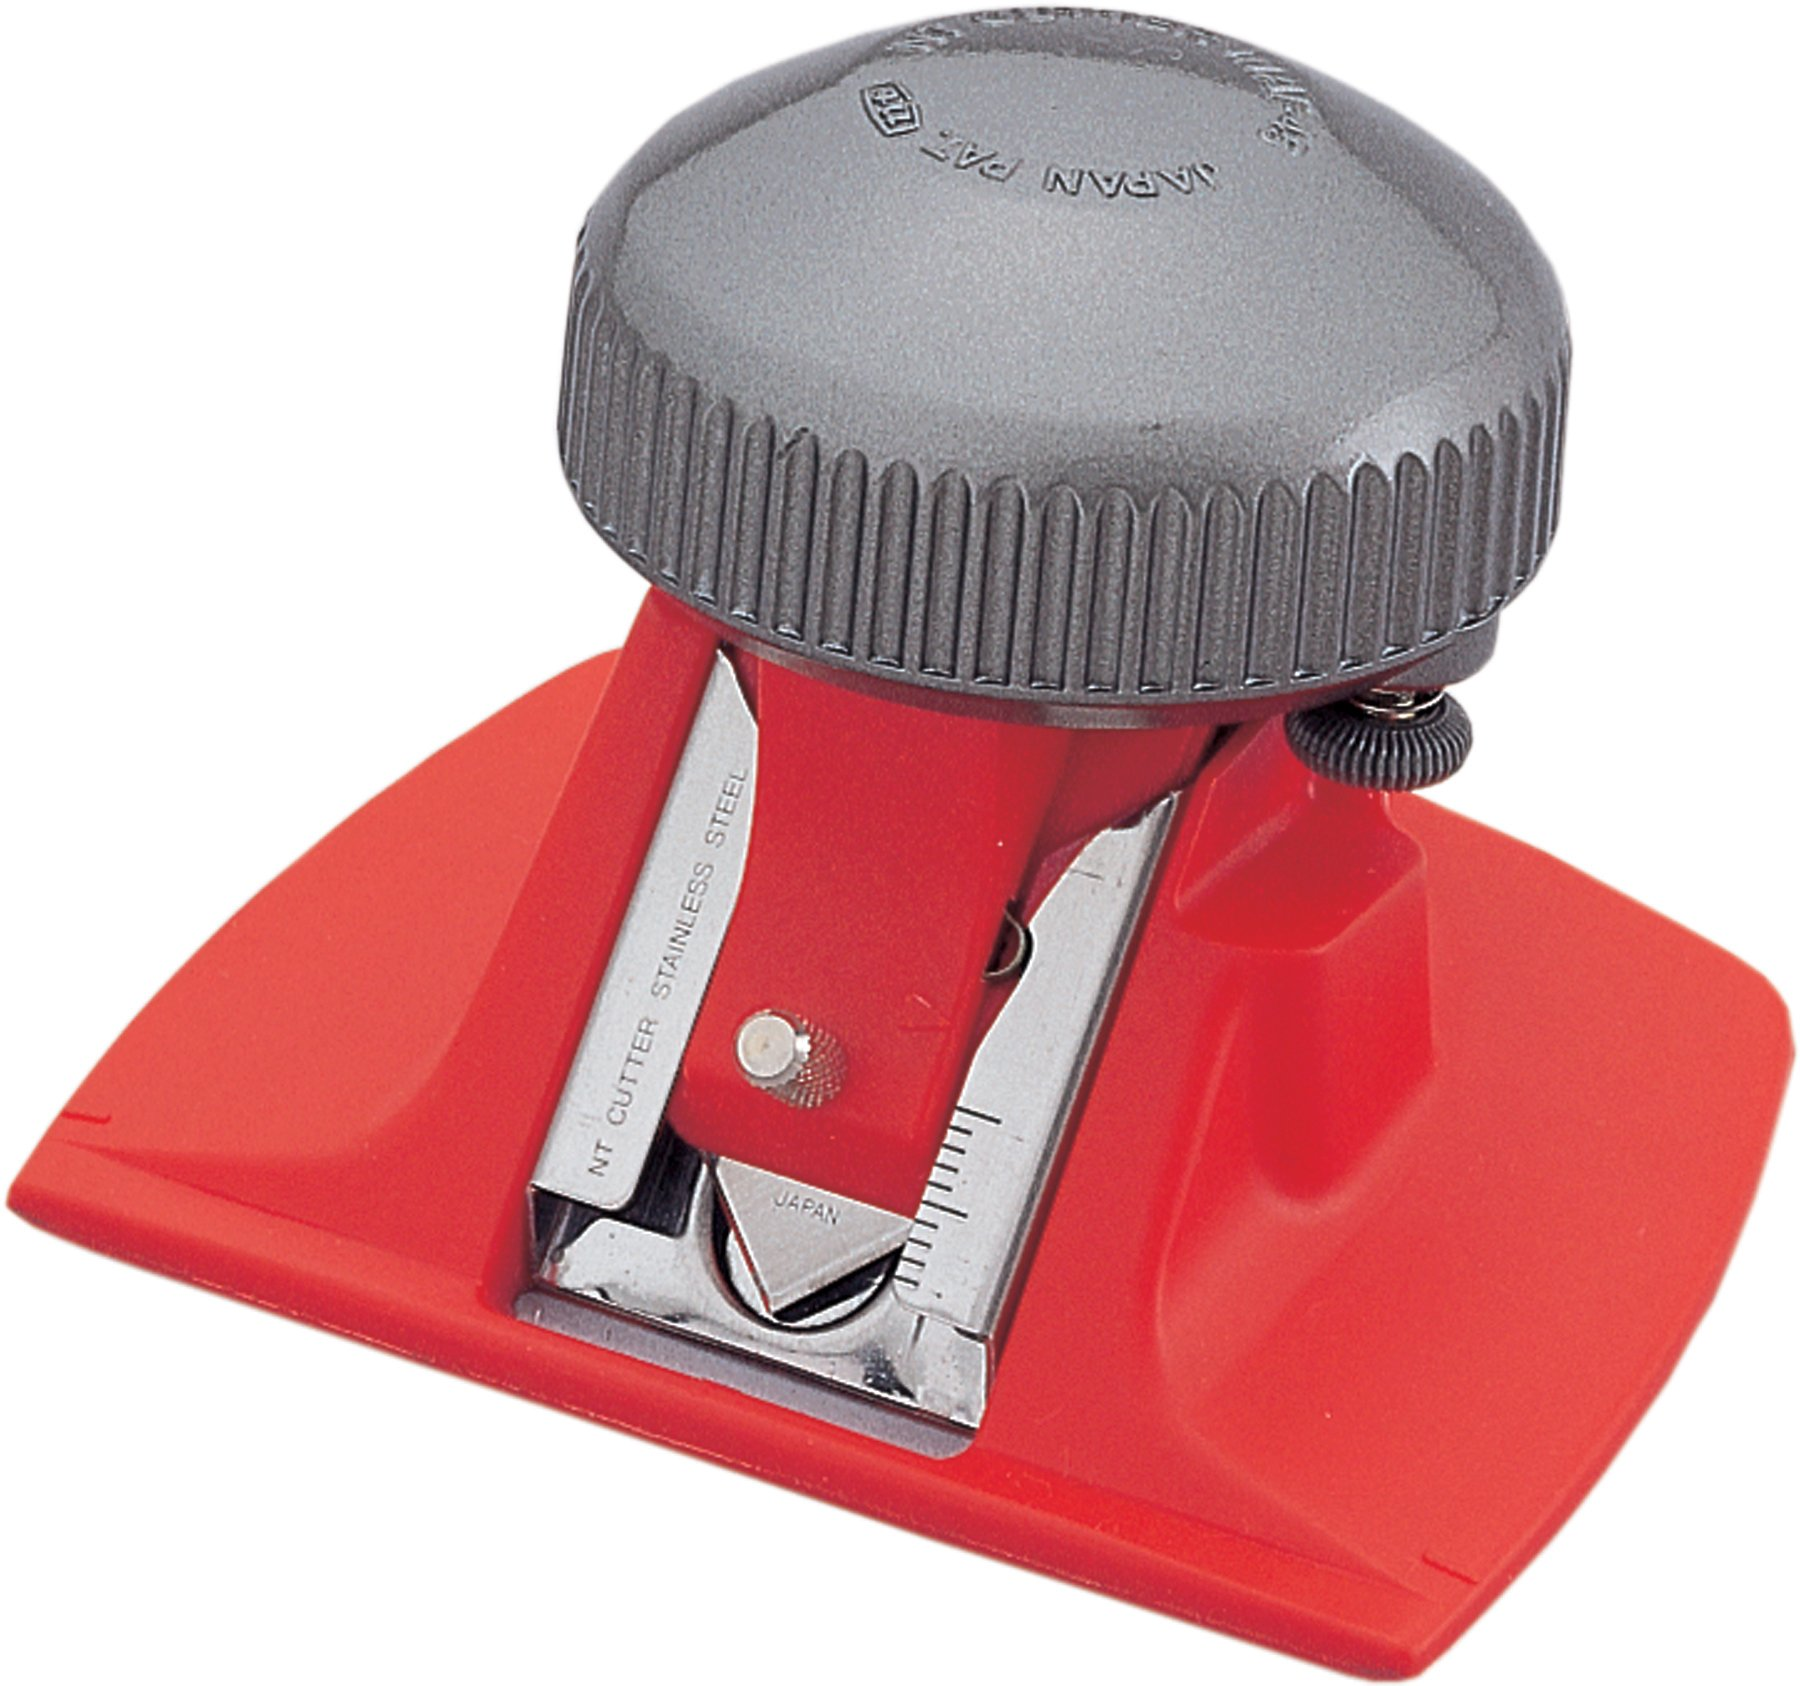 NT Cutter 45 degree bevel Mat Board Cutter, 1 Cutter (MAT-45P)